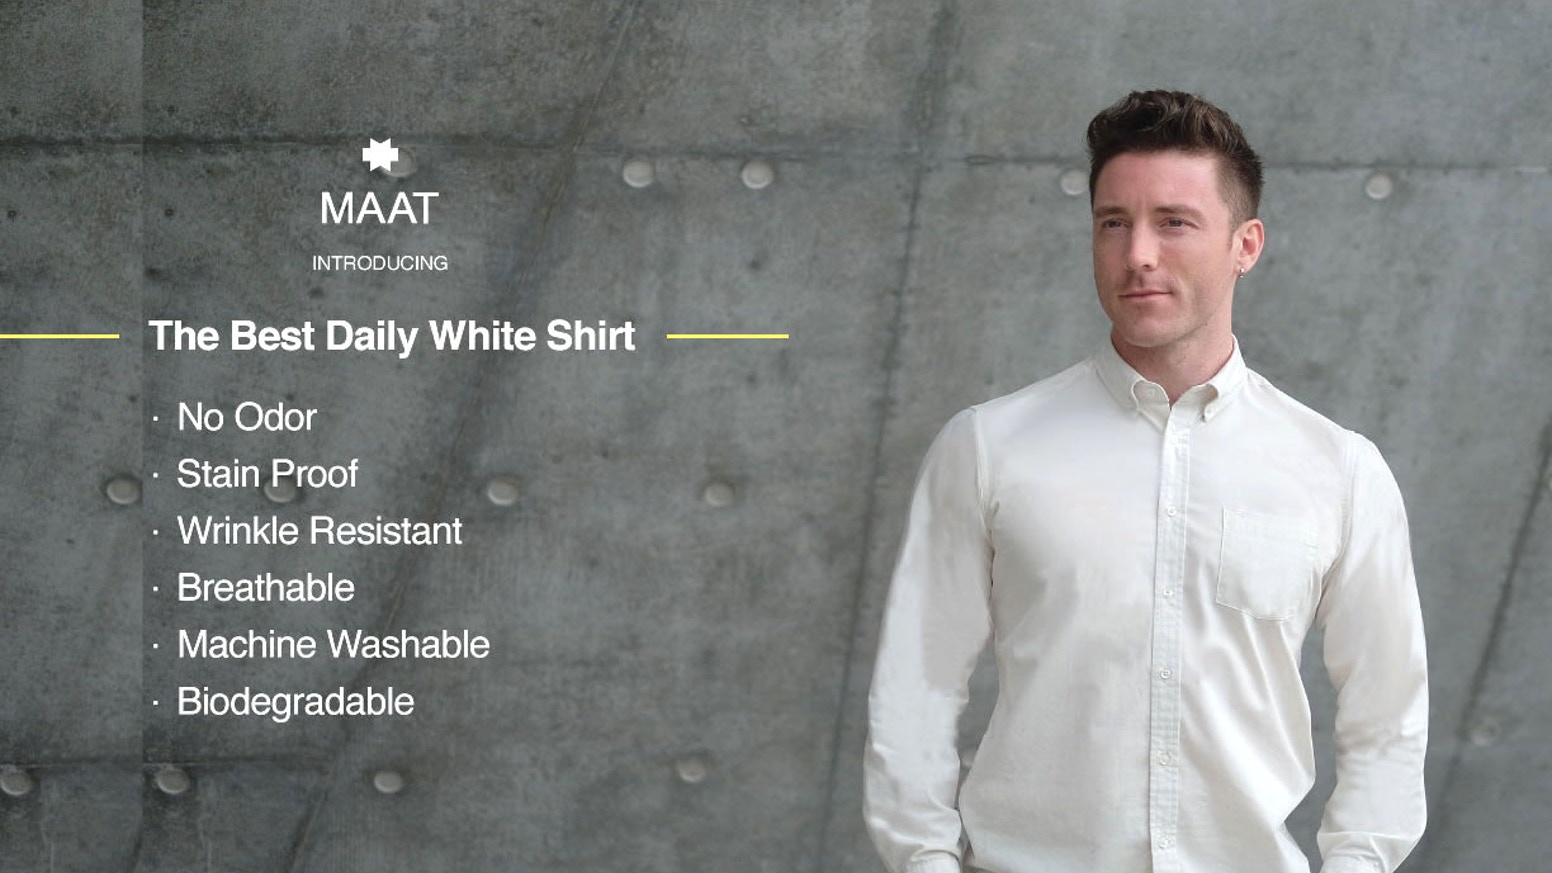 Premium soft and breathable white shirt with anti-bacterial and stain proof. Free Shipping Worldwide.